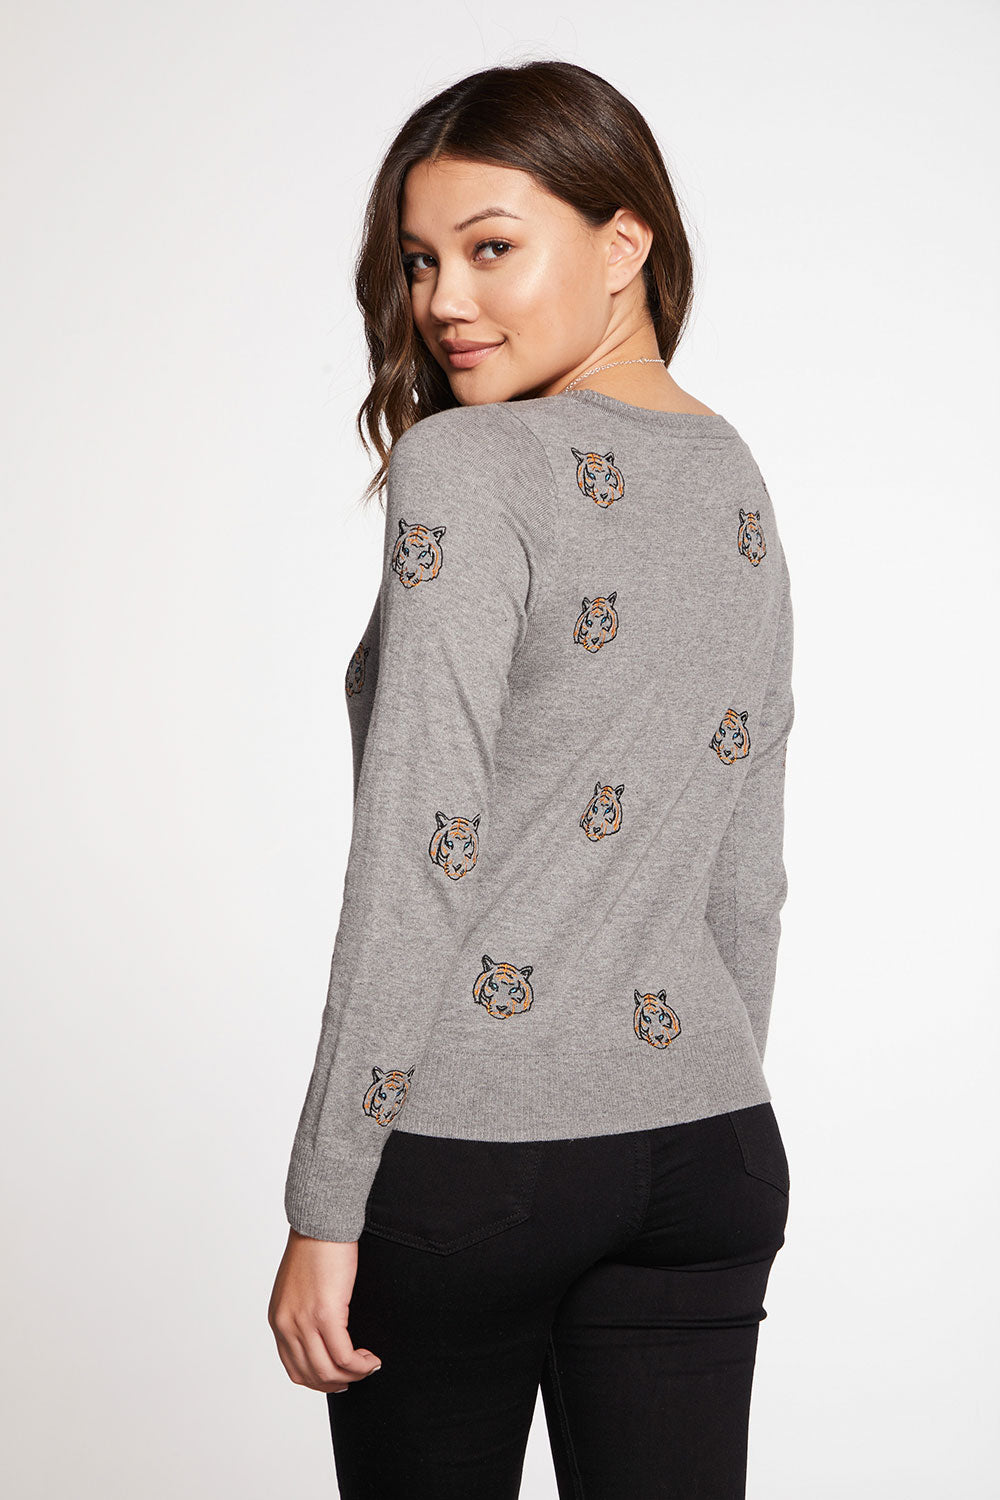 Tiny Tigers WOMENS - chaserbrand